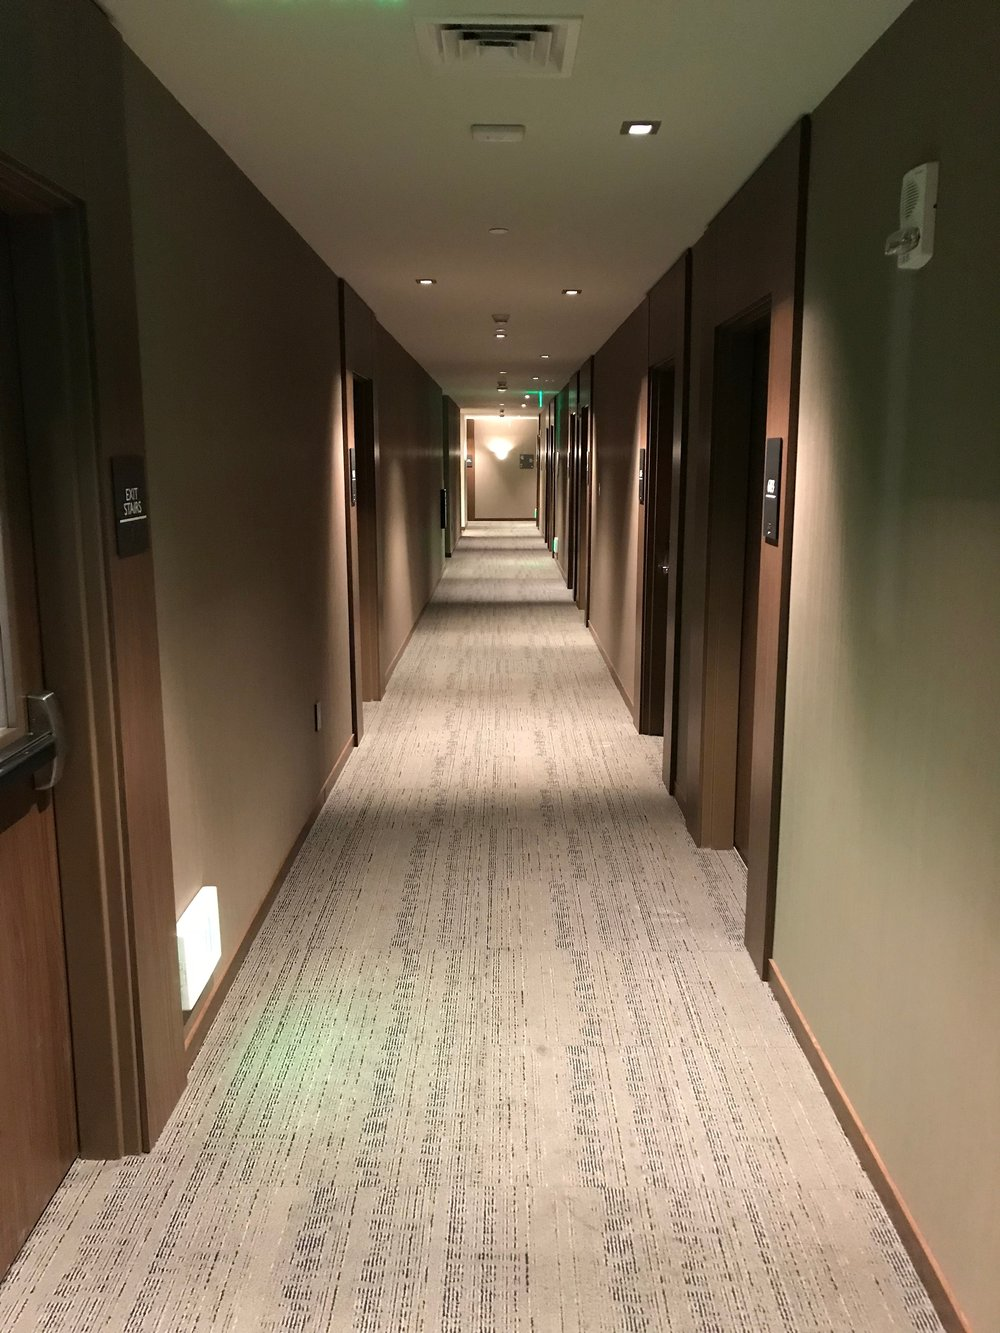 Hallway from the elevator